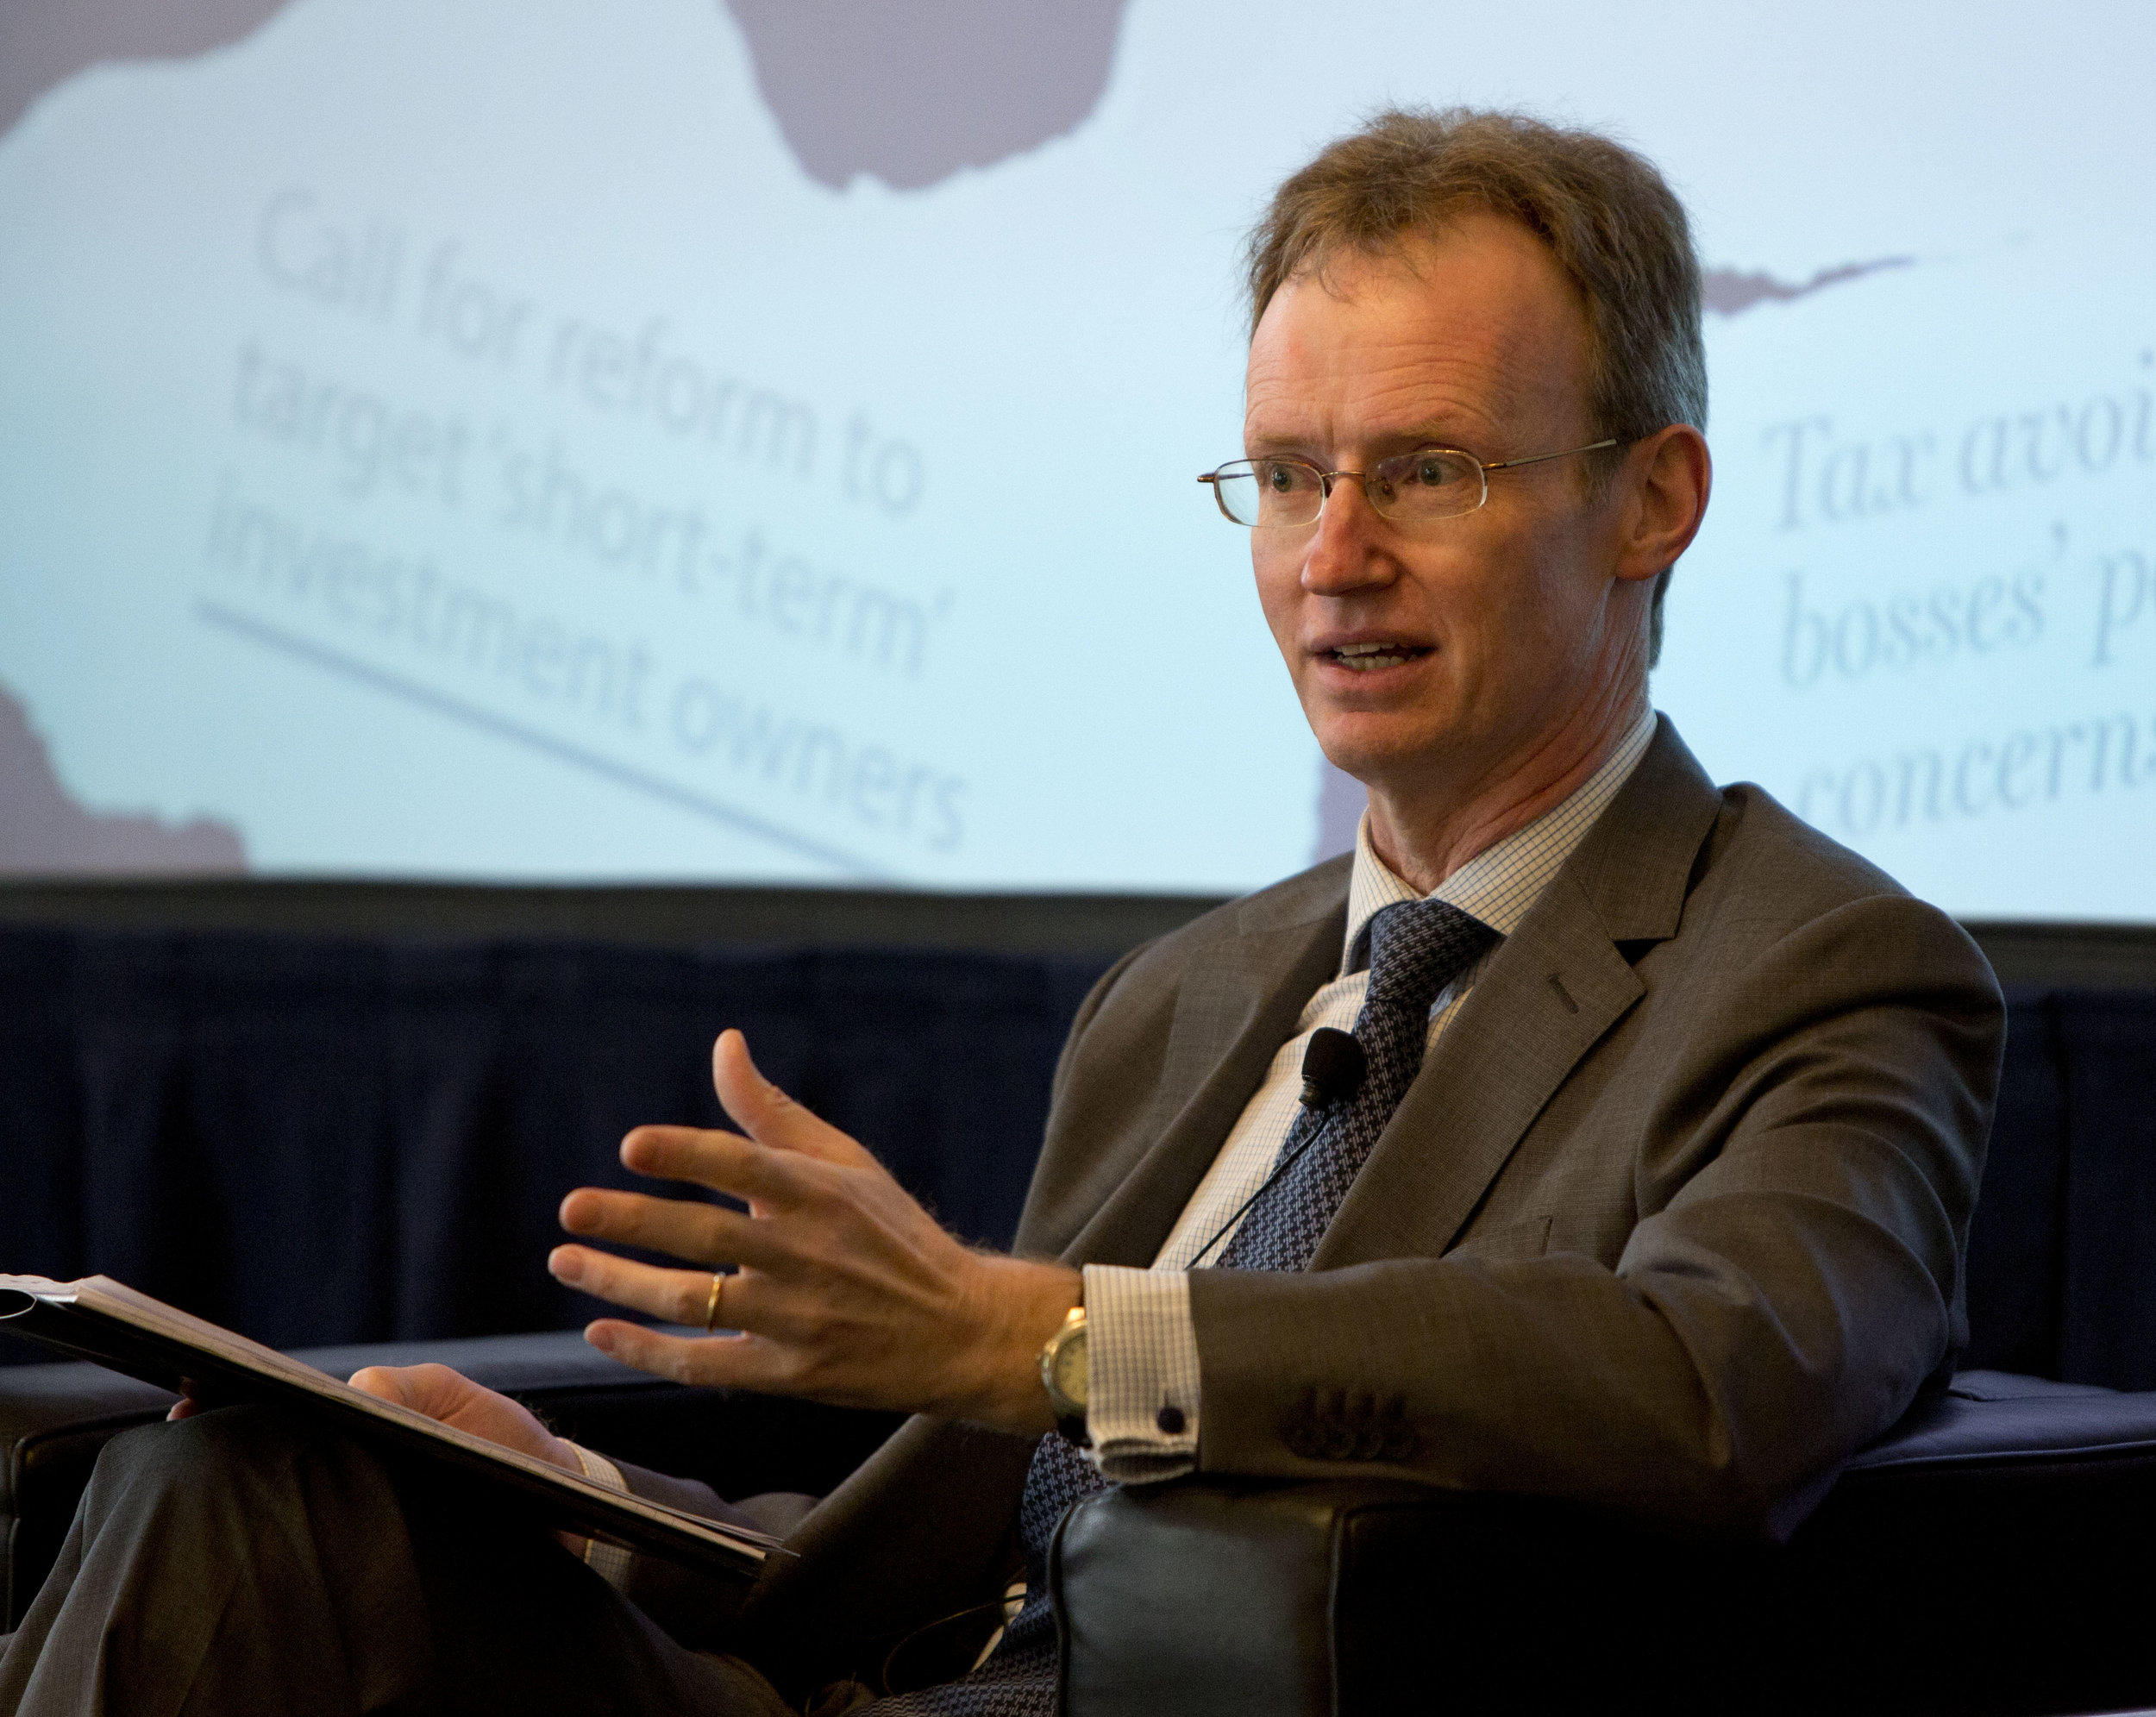 Andrew Hill, Management Editor, Financial Times